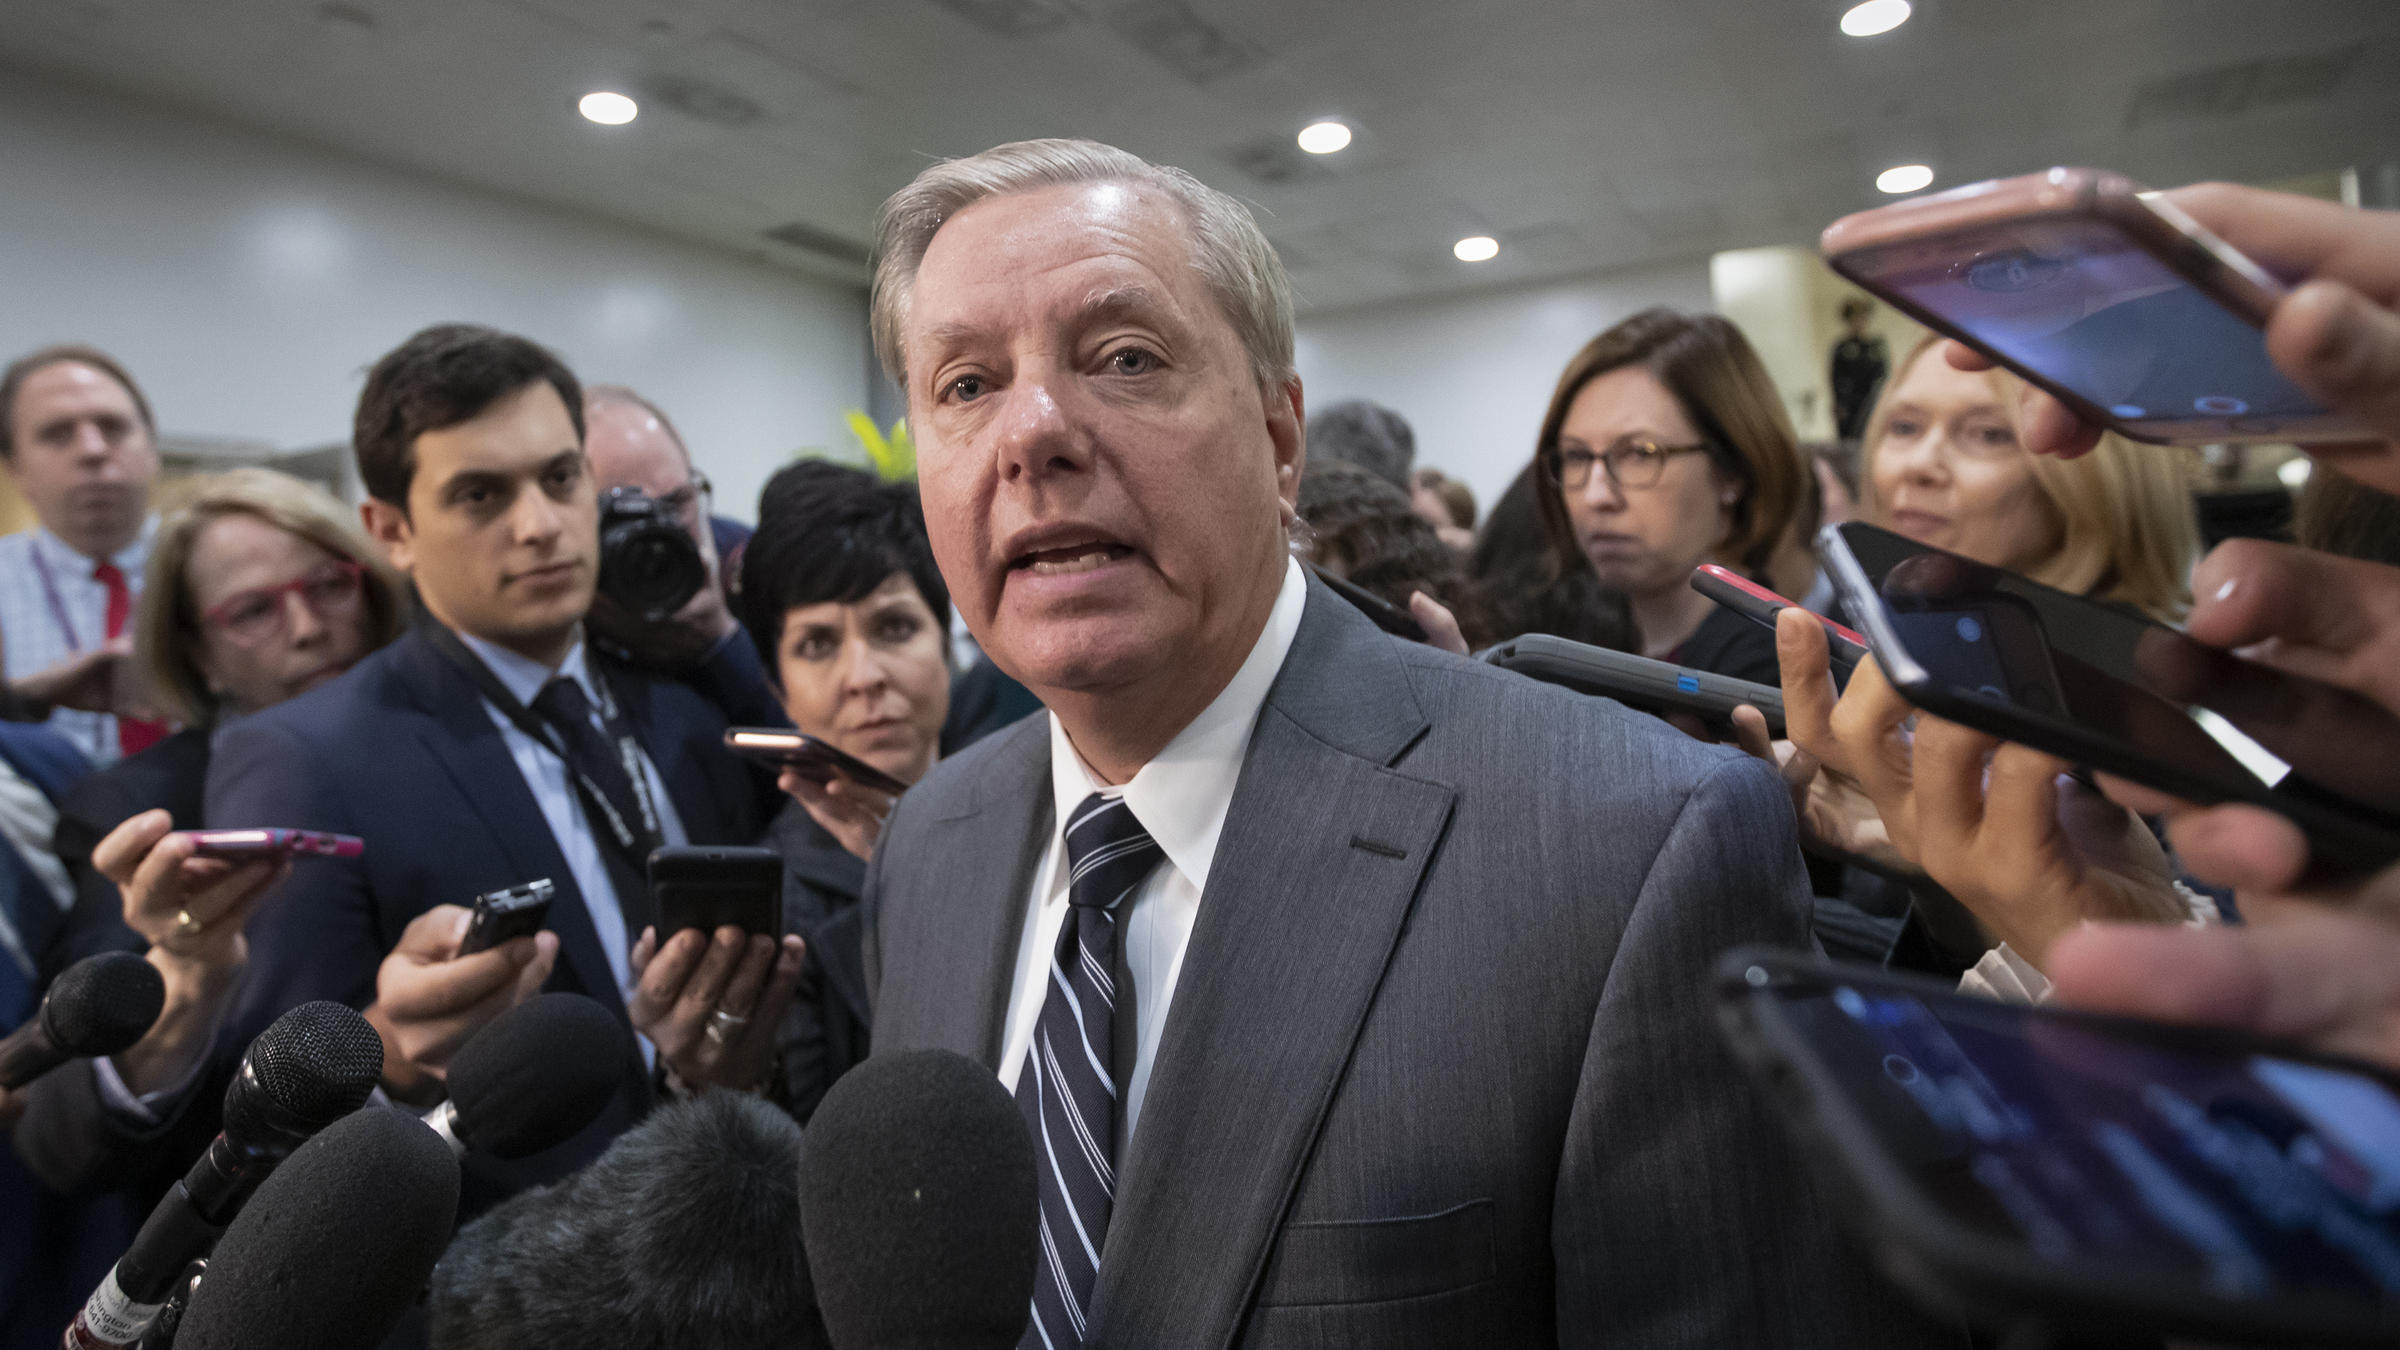 Sen. Lindsey Graham R-S.C. says he's convinced that Saudi Arabia's Crown Prince Mohammed bin Salman was